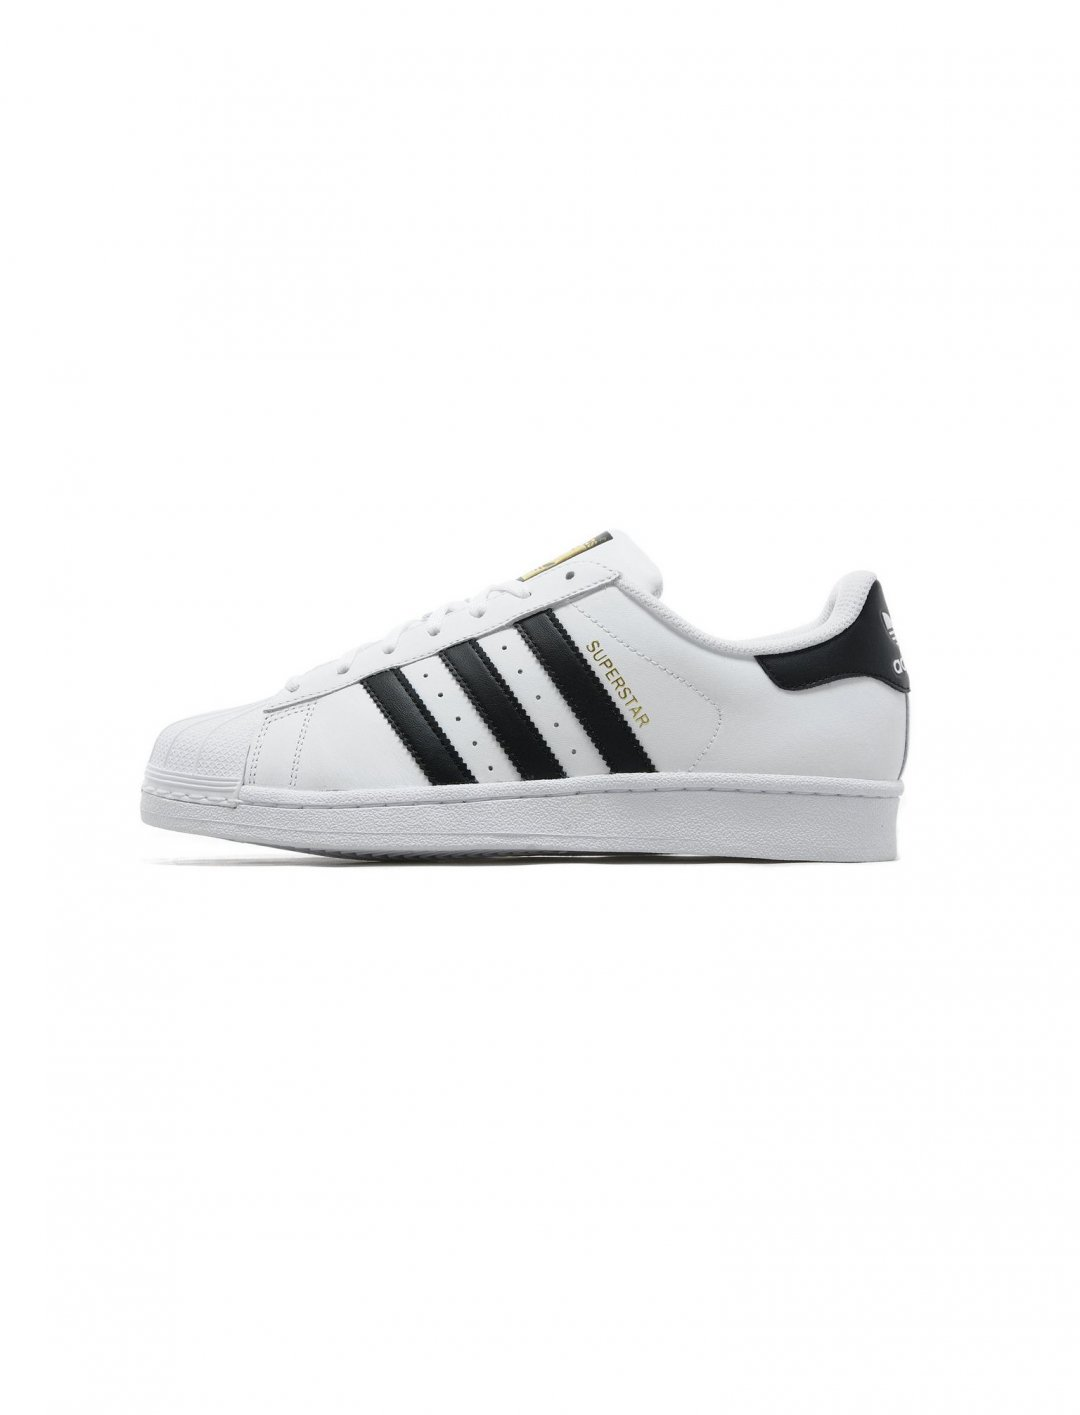 "Adidas Superstar Trainers {""id"":12,""product_section_id"":1,""name"":""Shoes"",""order"":12} Adidas"